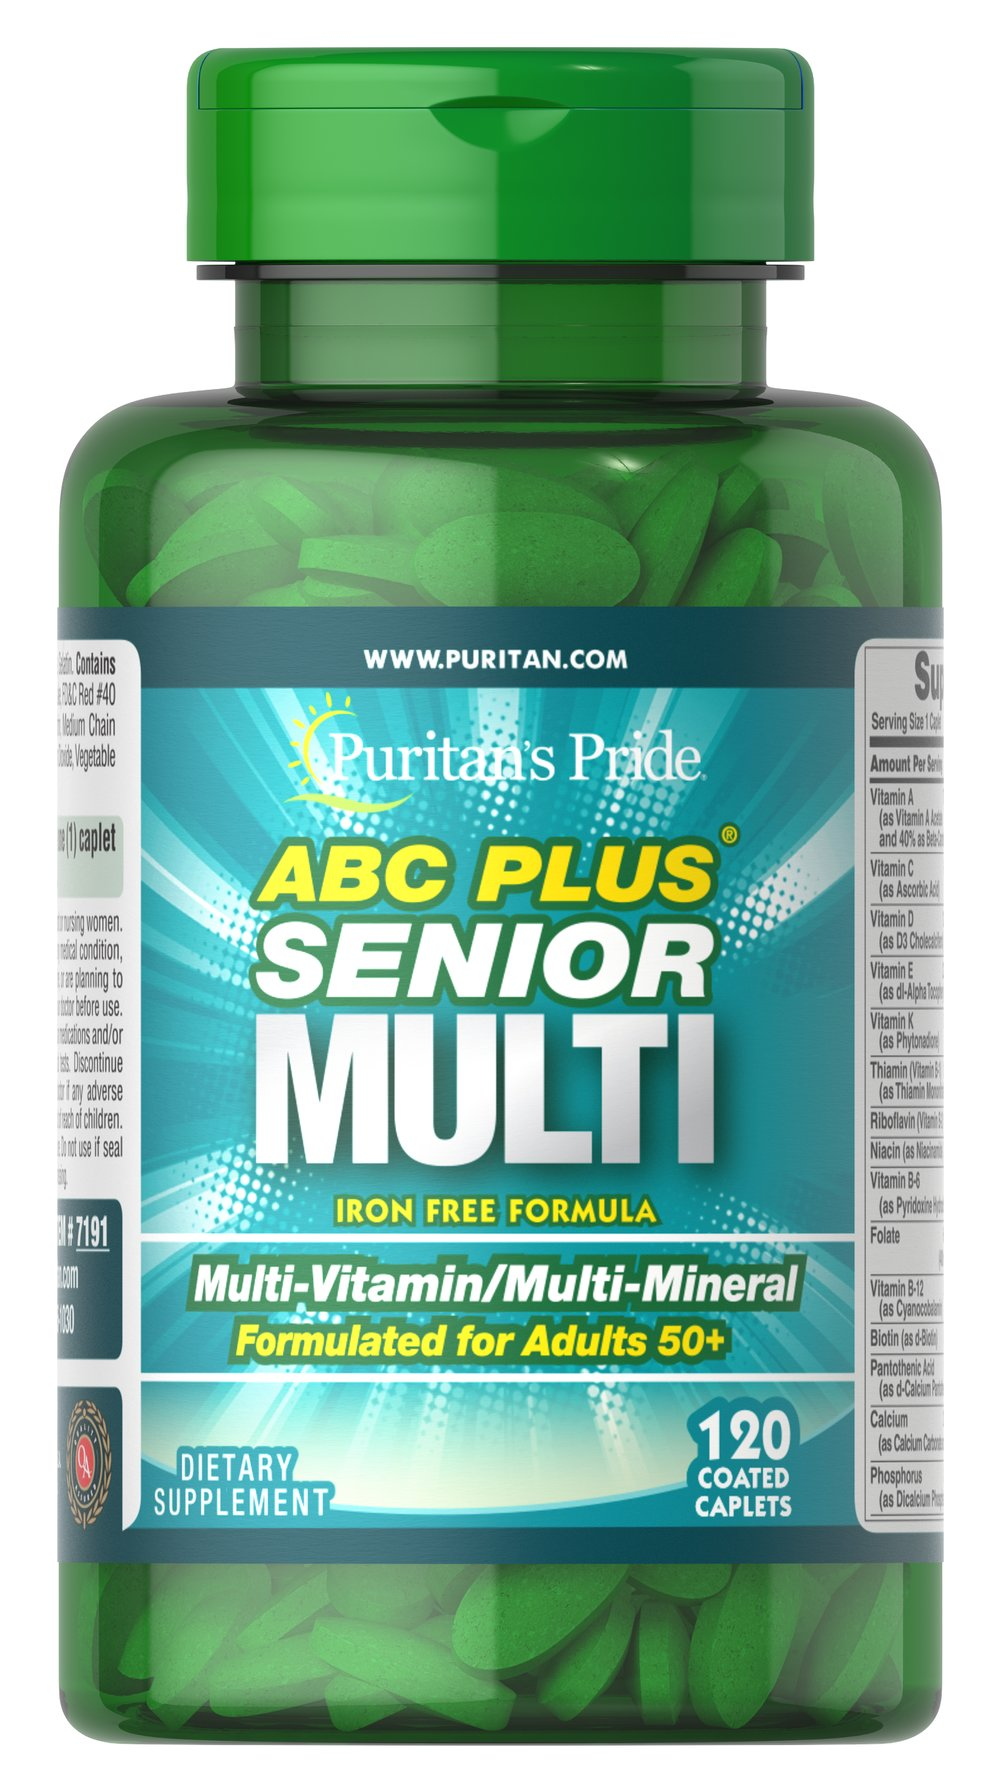 ABC Plus® Senior Multivitamin Multi-Mineral Formula <p>A special high-quality blend of vitamins and minerals formulated exclusively for adults 50 and over; delivers 100% or more daily values of Vitamins C, D, E, B-2, Niacin, Folic Acid, B-12, Zinc and more. This iron-free, heart-healthy supplement also includes Lutein and Lycopene.** Compare and save!</p> 120 Caplets  $15.49